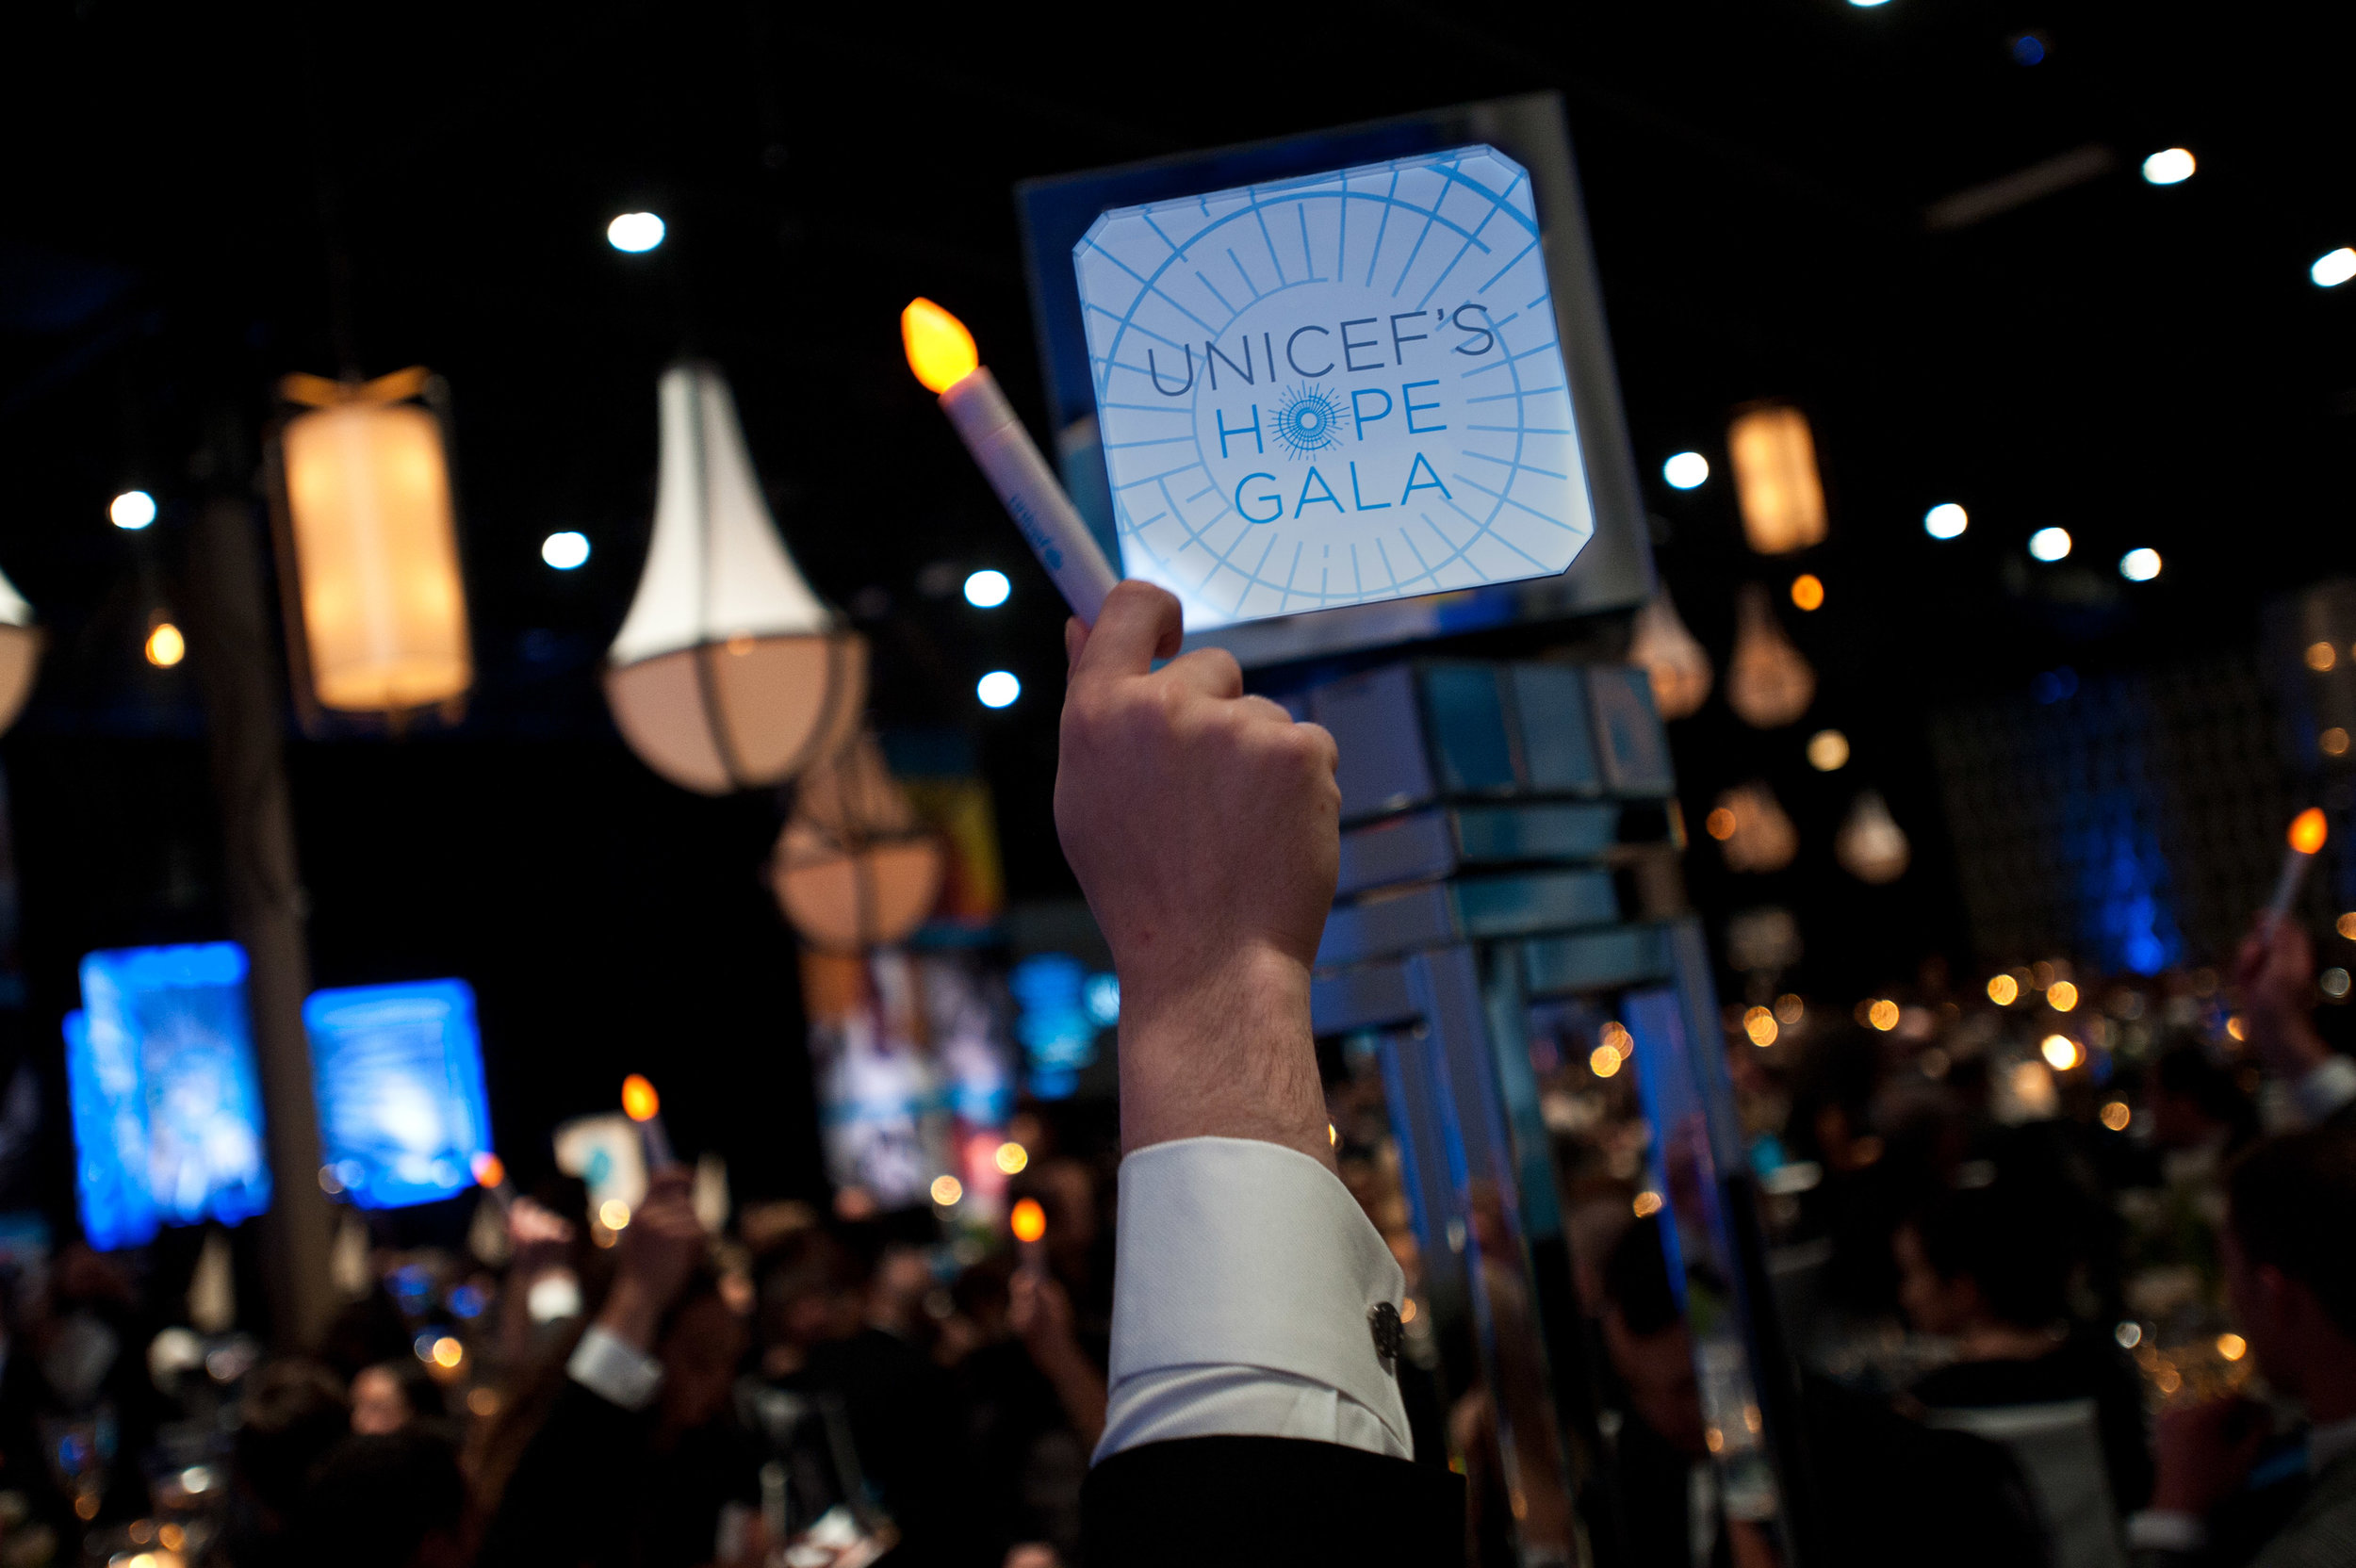 Guests bid on the live auction at the 2017 UNICEF's Hope Gala (c) 2017 Timothy Hiatt Photography